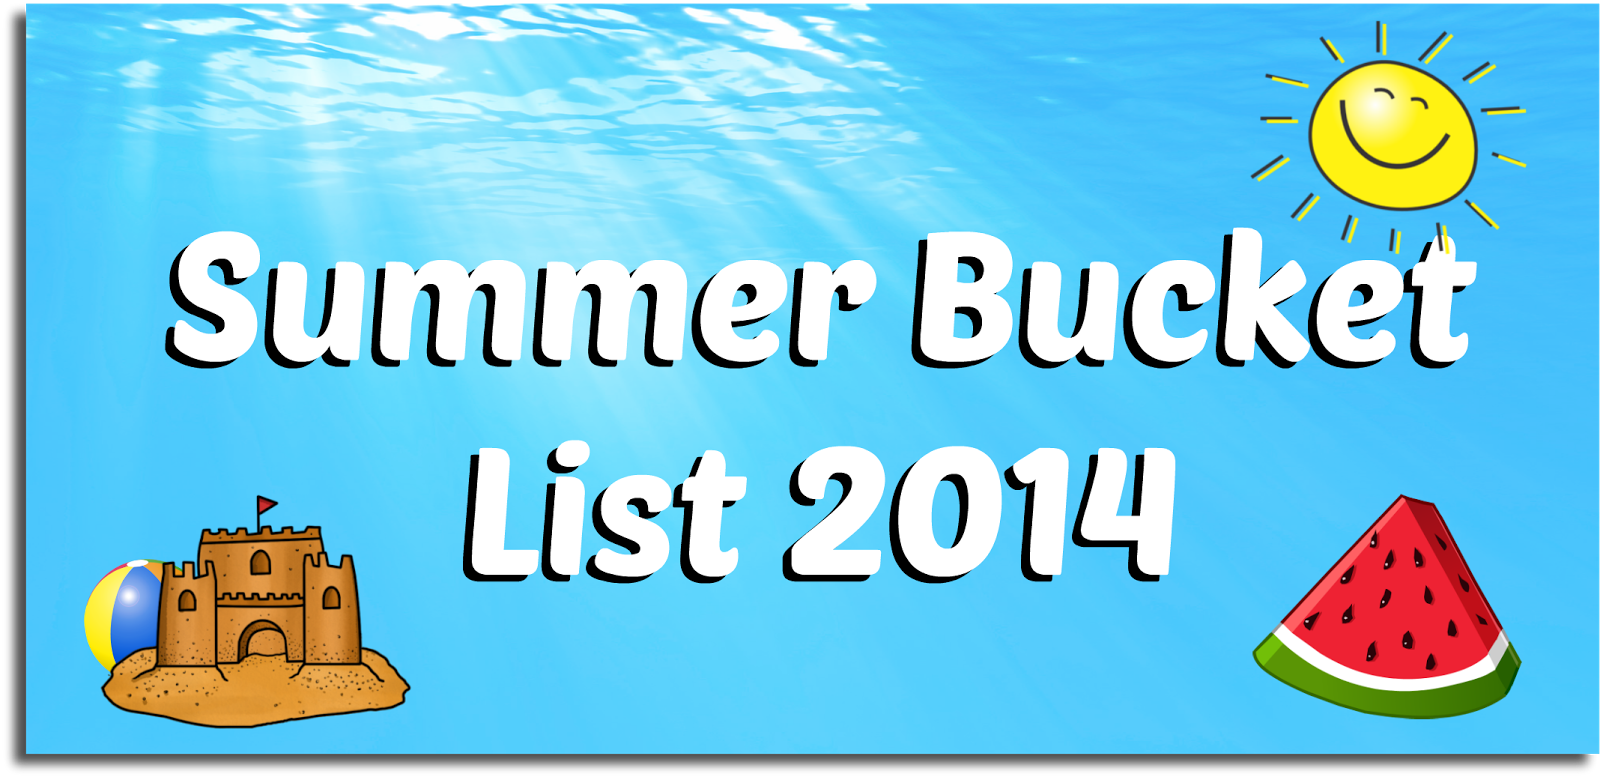 http://timeforseason.blogspot.com/2014/05/bucket-list-for-summer.html